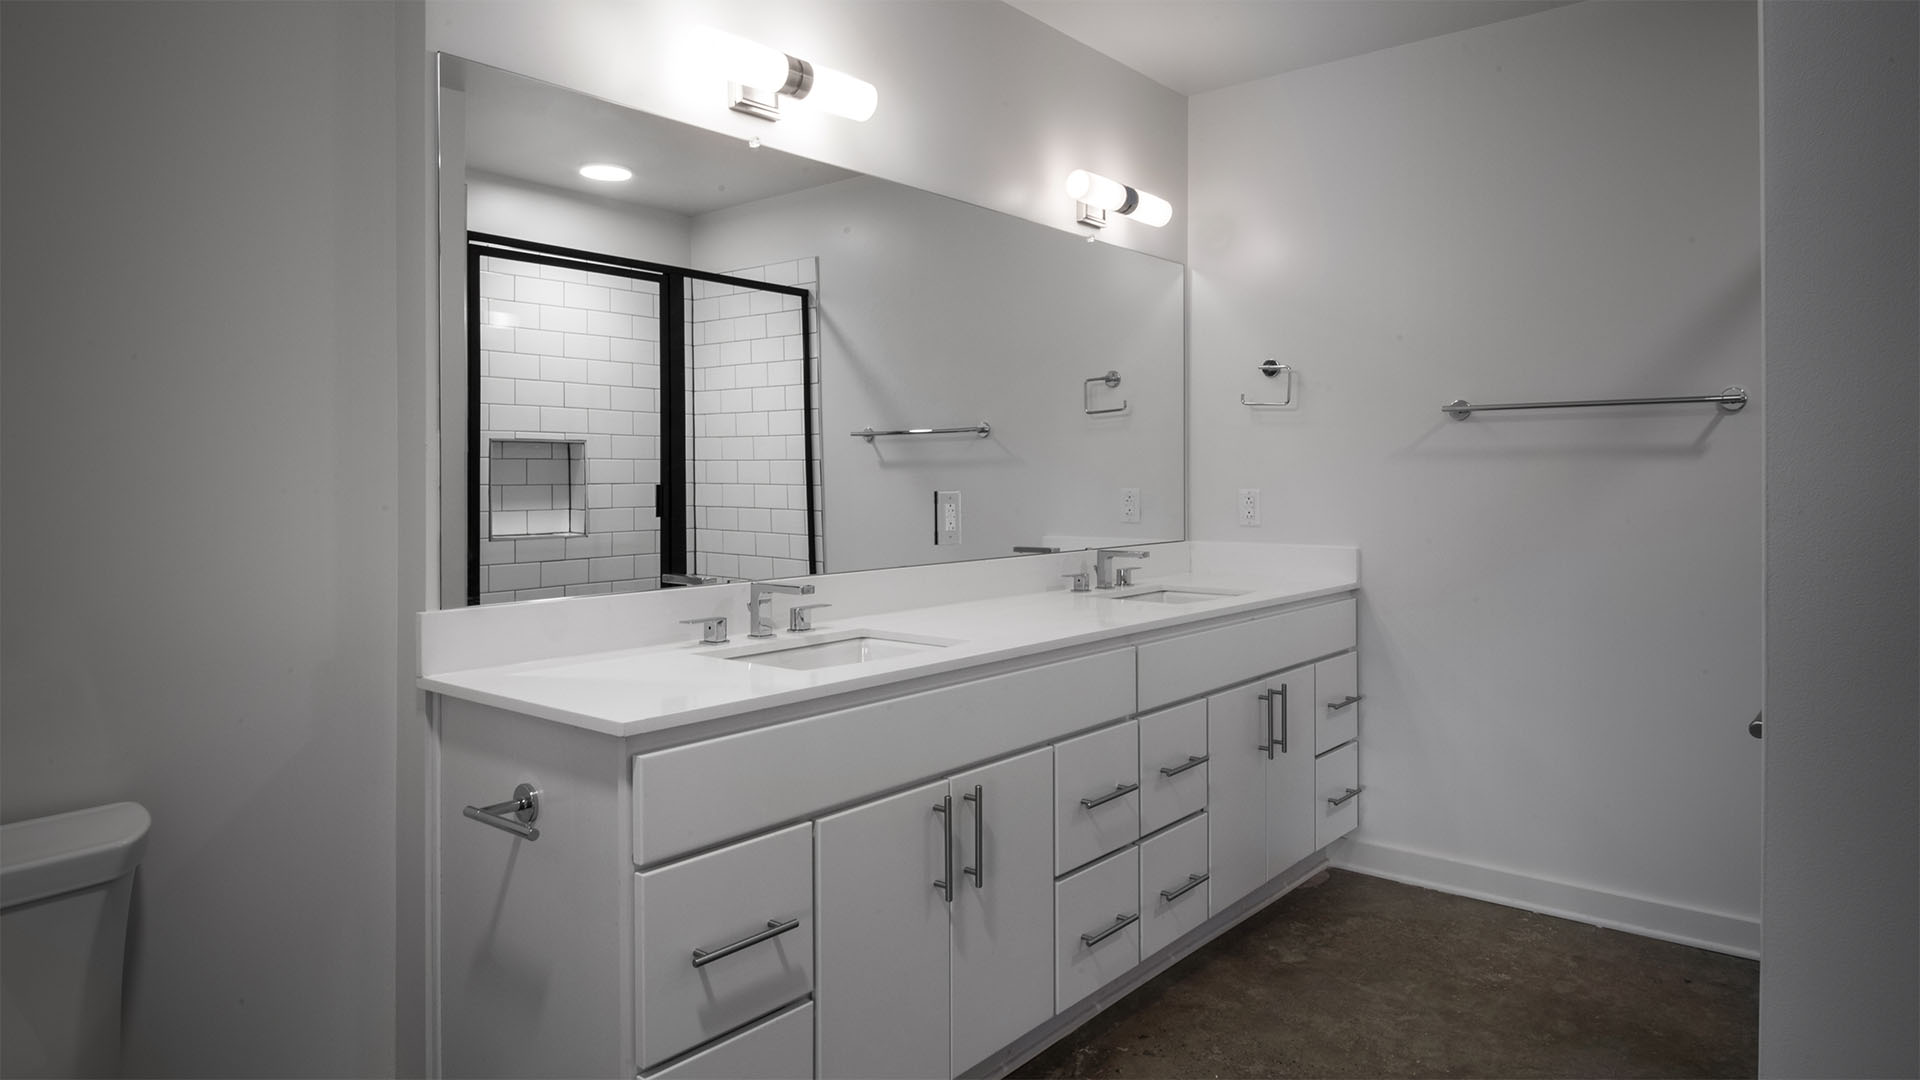 Large bathroom with double sink vanity at The Denham Building loft apartments for rent in South Birmingham, AL